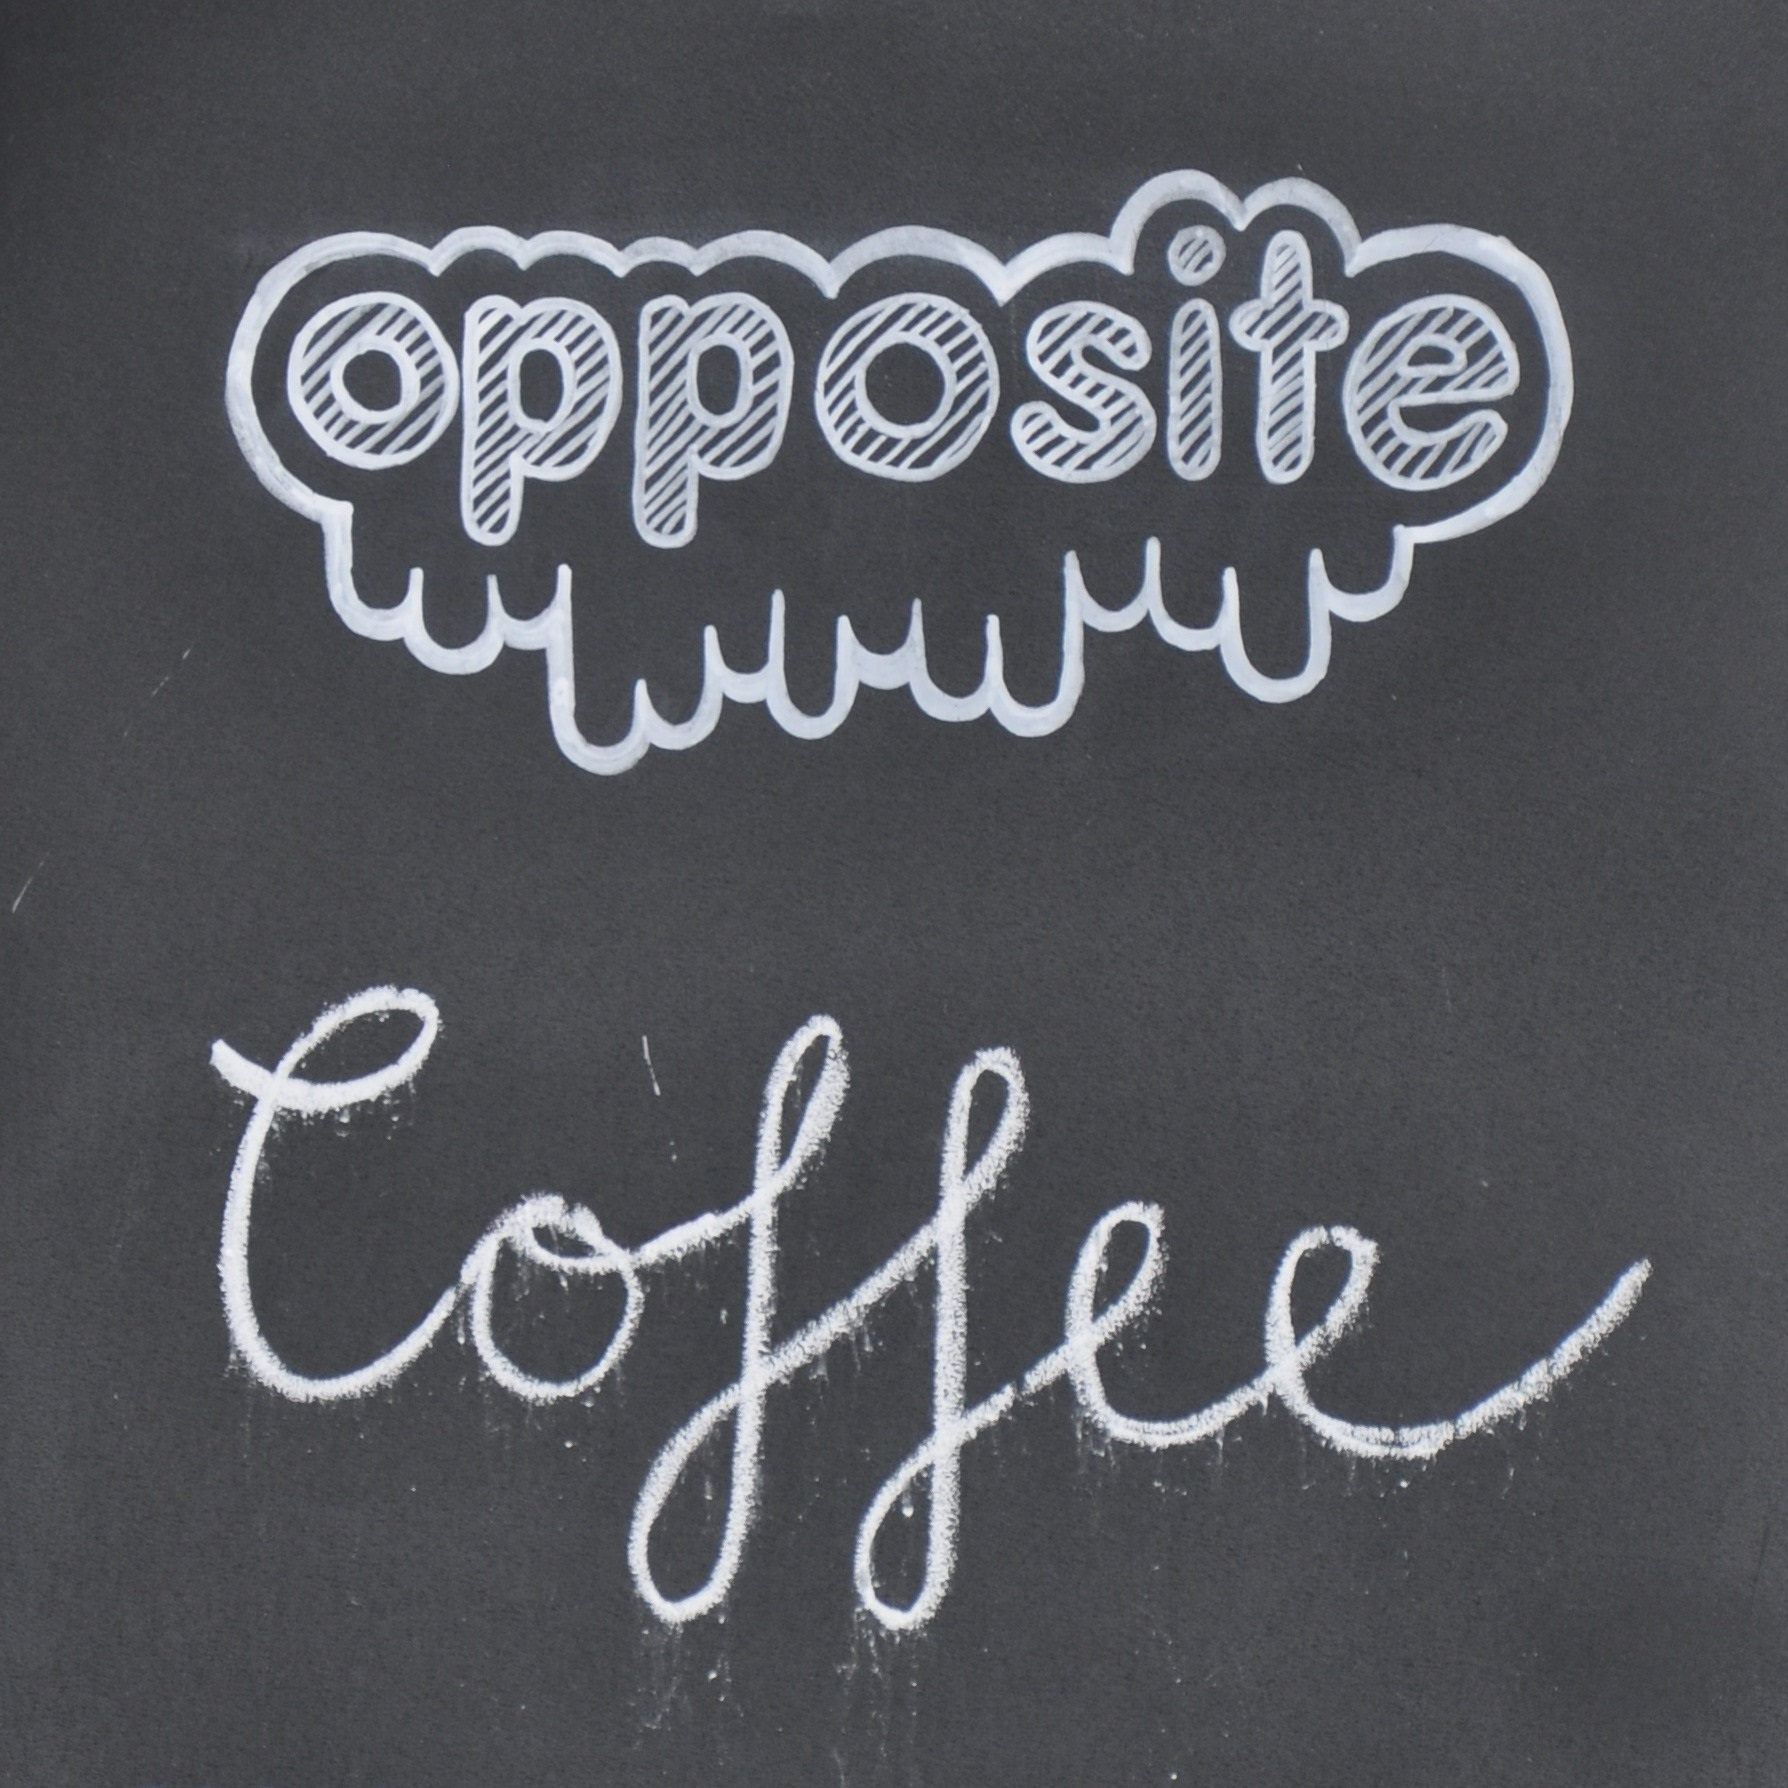 The Opposite logo in white chalk on a black background, with the word 'Coffee' written underneath.